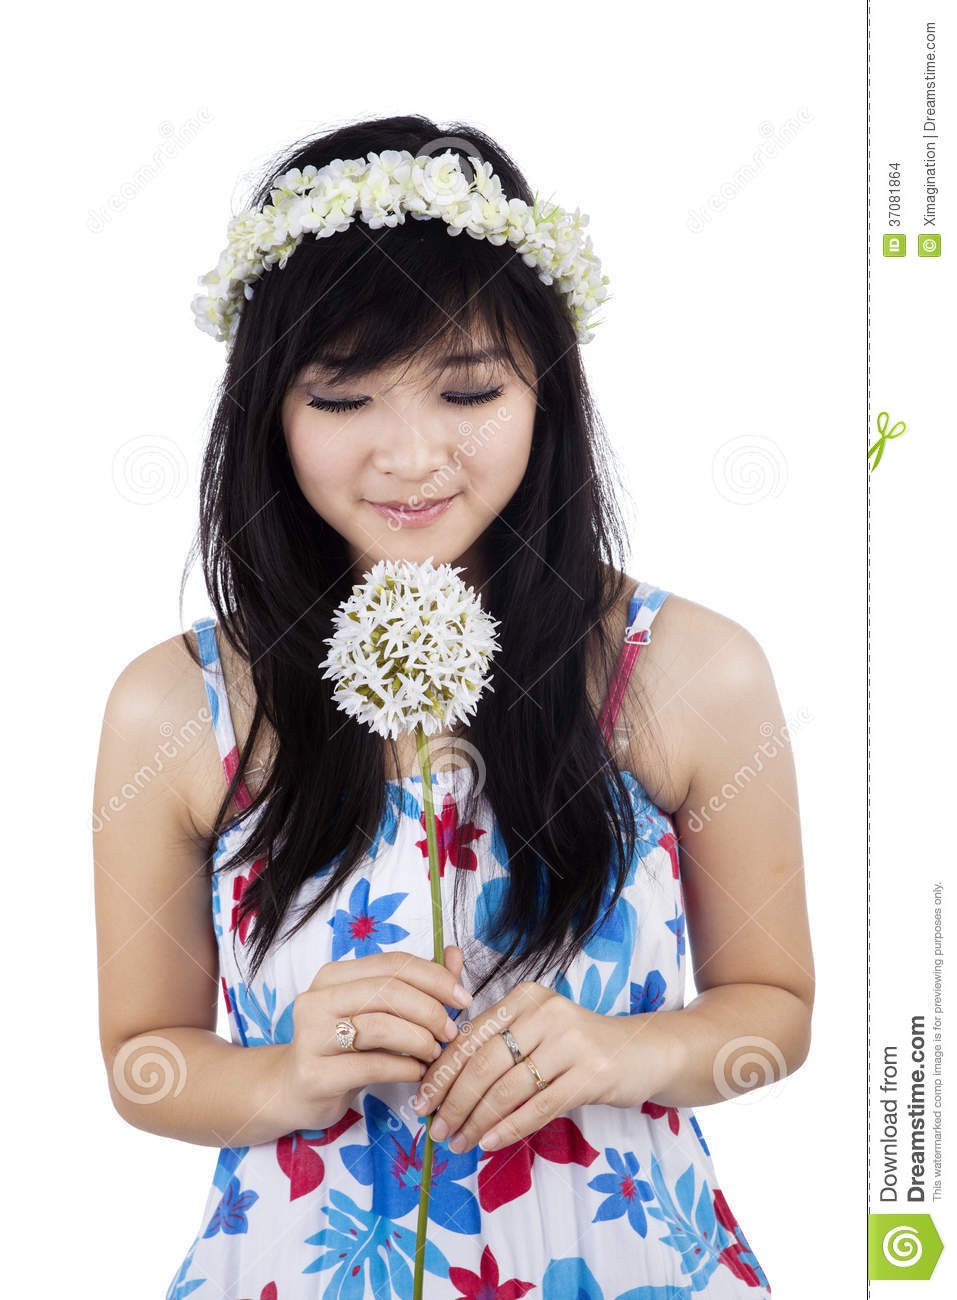 A woman smelling flower